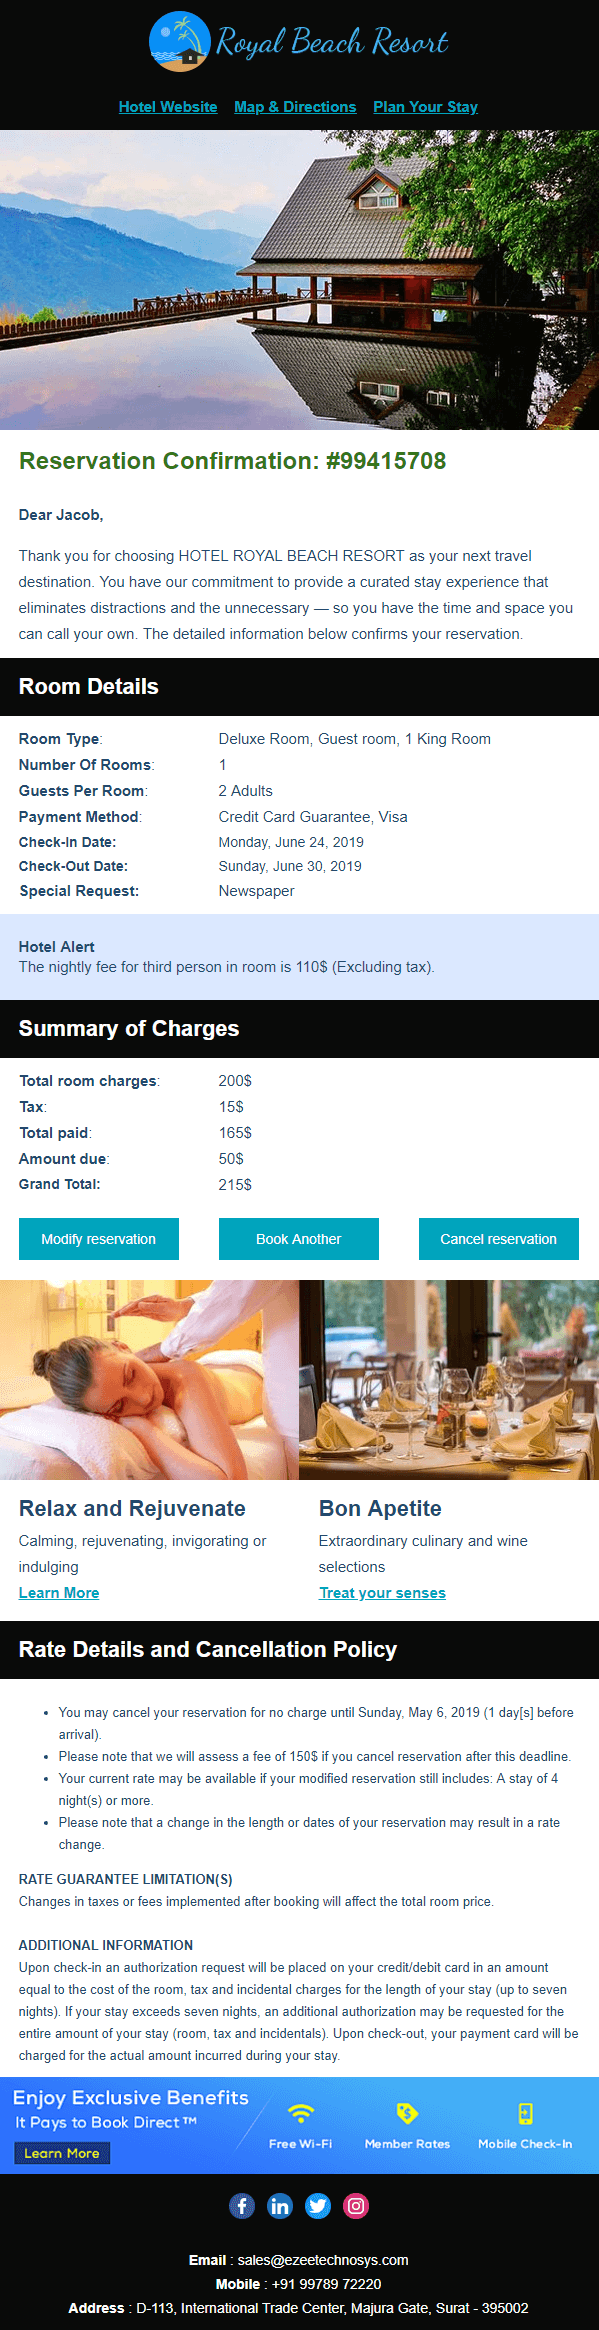 How to Effectively Design Hotel Booking Confirmation Email